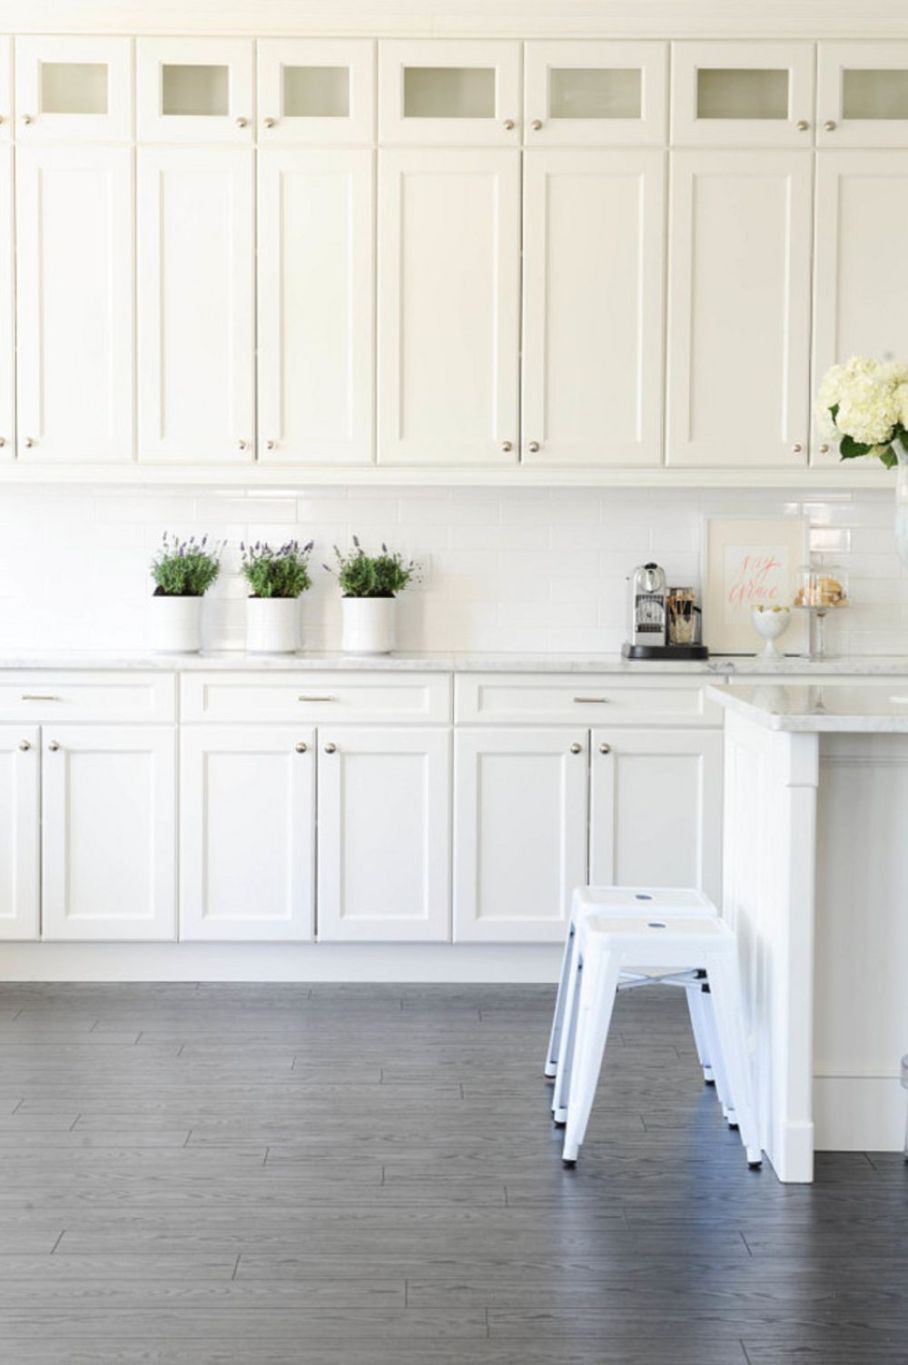 46 Awesome Inspiring White Shaker Cabinet To Upgrade Your Kitchen #whiteshakercabinets